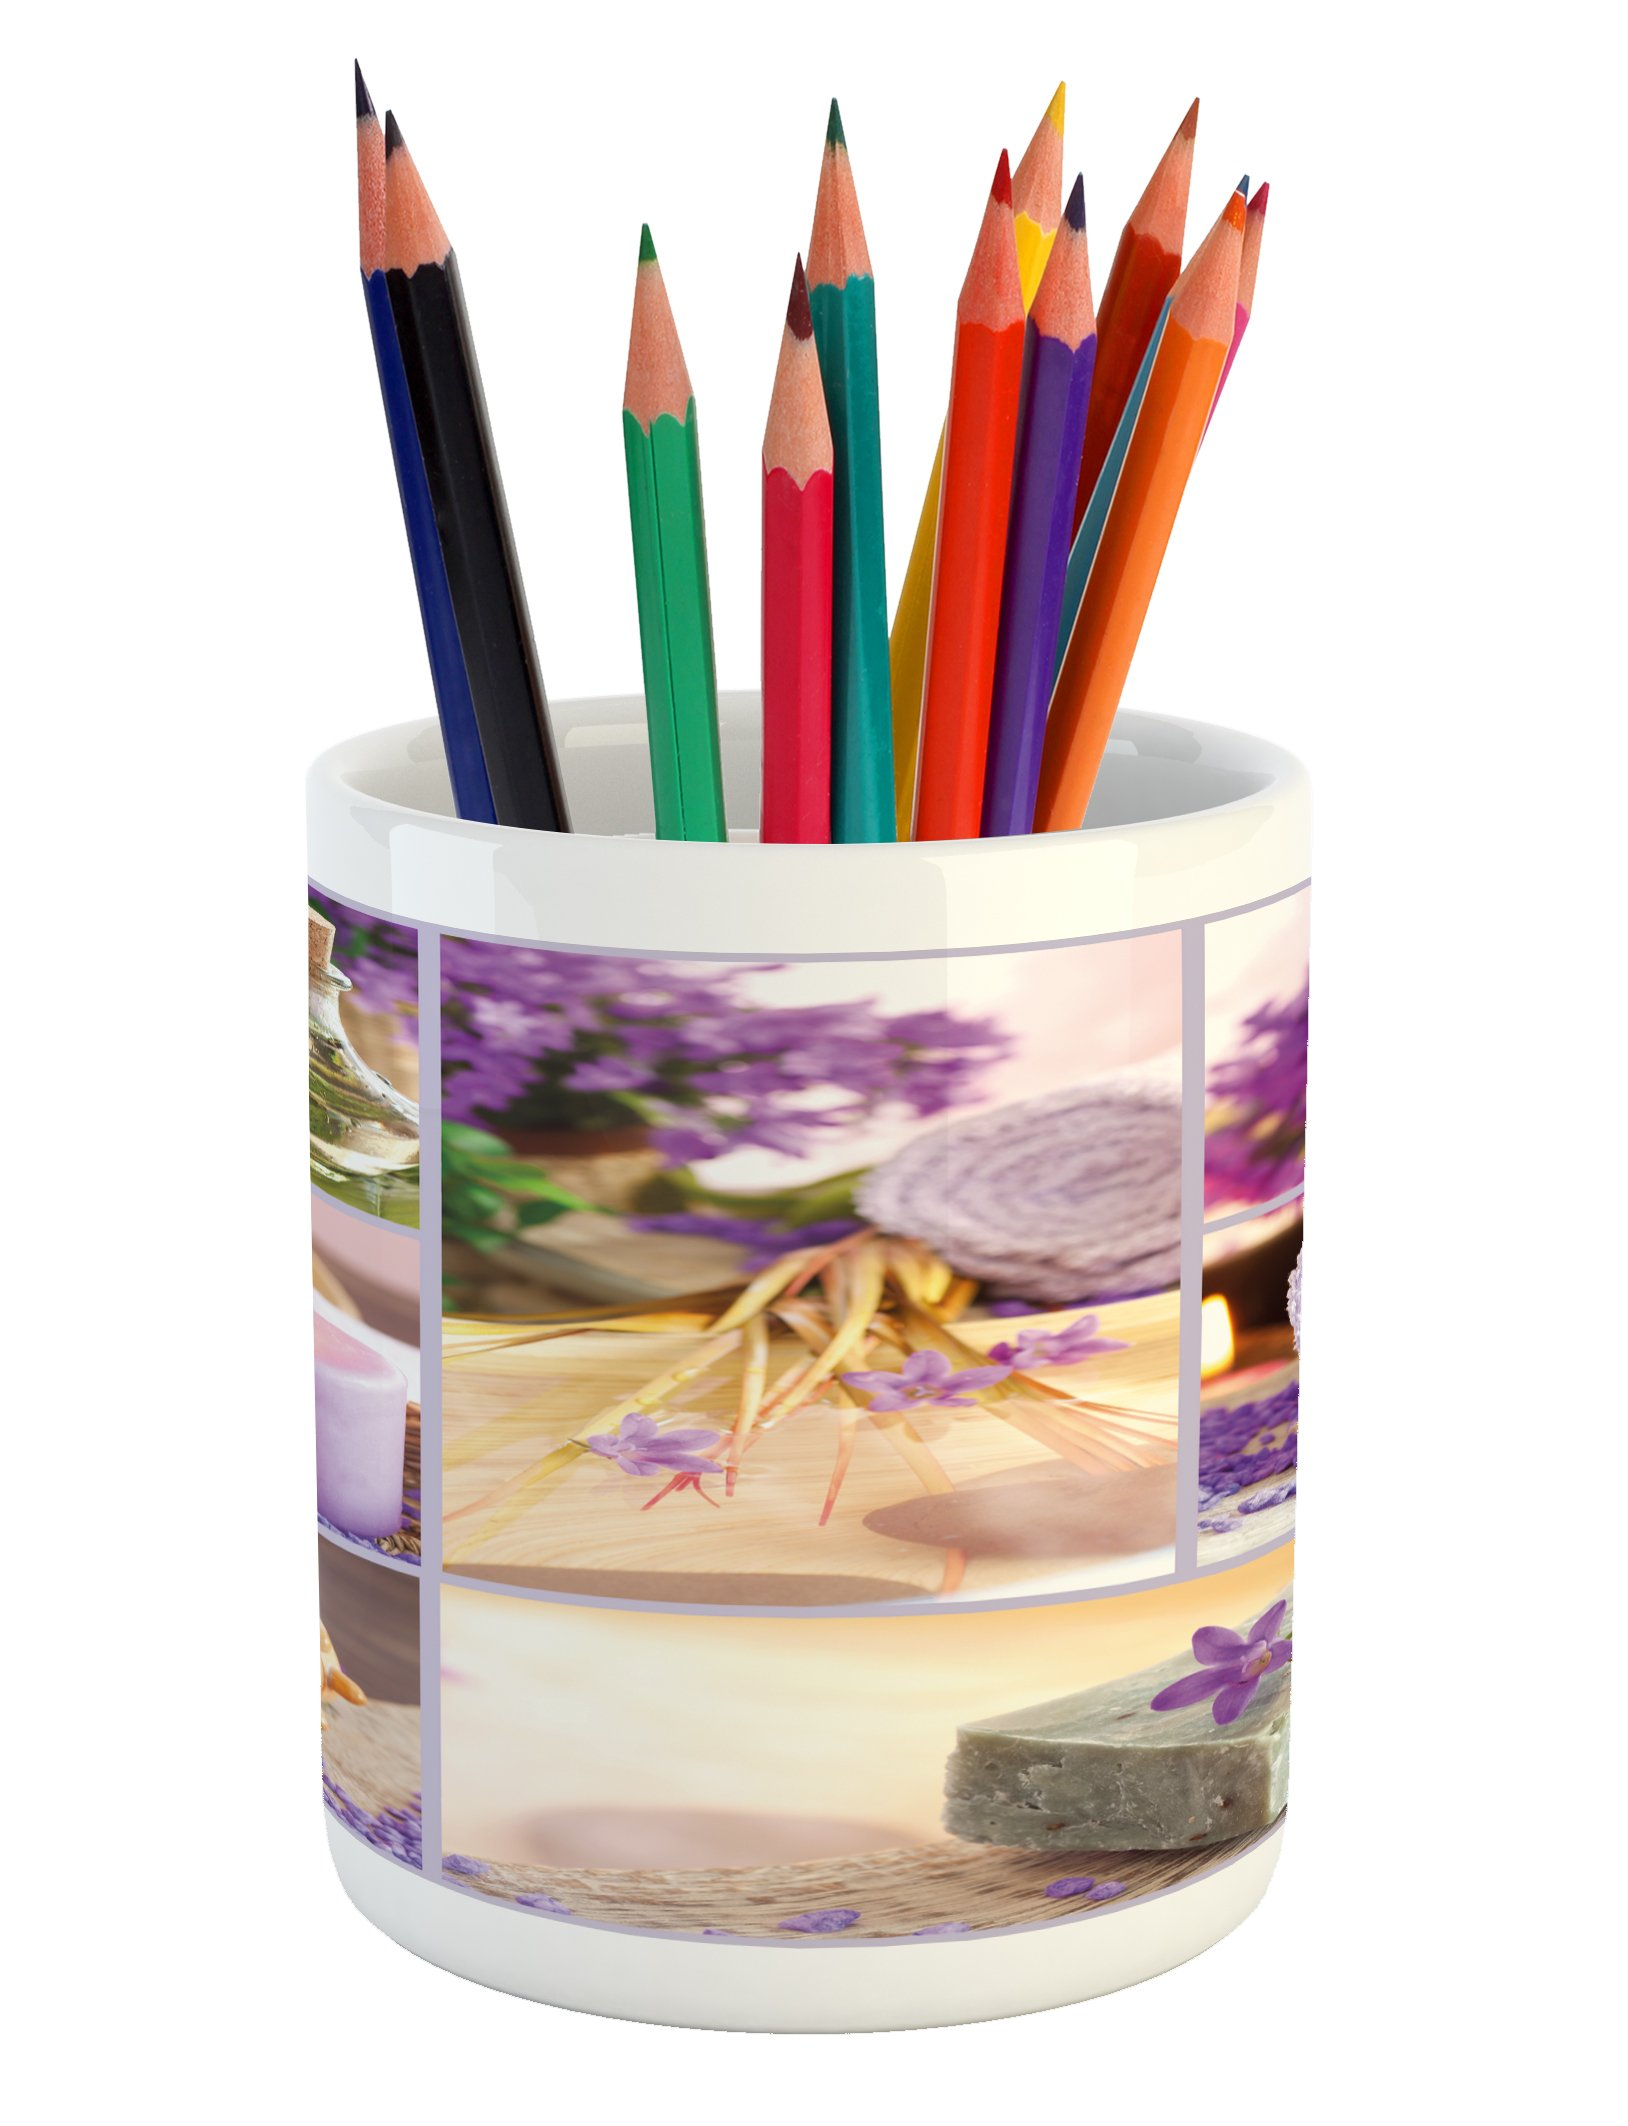 Lunarable Spa Pencil Pen Holder, Lavender Themed Relaxing Joyful Spa Day with Aromatherapy Oils Candles Relaxation, Printed Ceramic Pencil Pen Holder for Desk Office Accessory, Purple and White